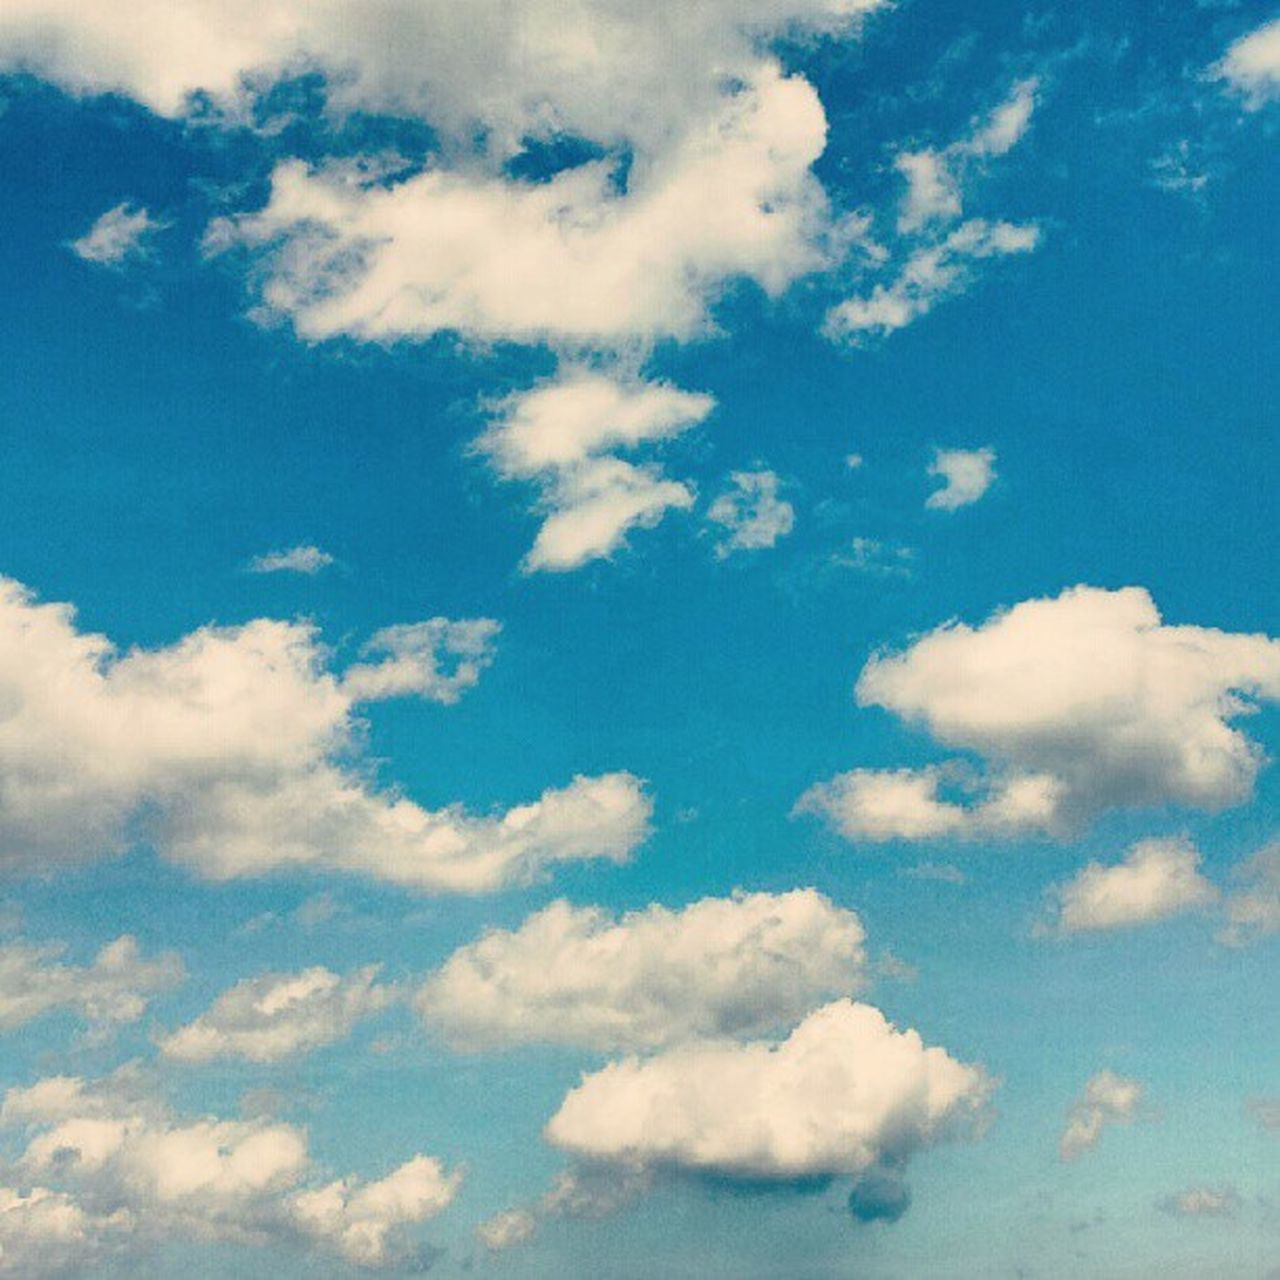 cloud - sky, sky, nature, fluffy, beauty in nature, cloudscape, backgrounds, blue, sky only, softness, heaven, tranquility, scenics, full frame, no people, day, low angle view, outdoors